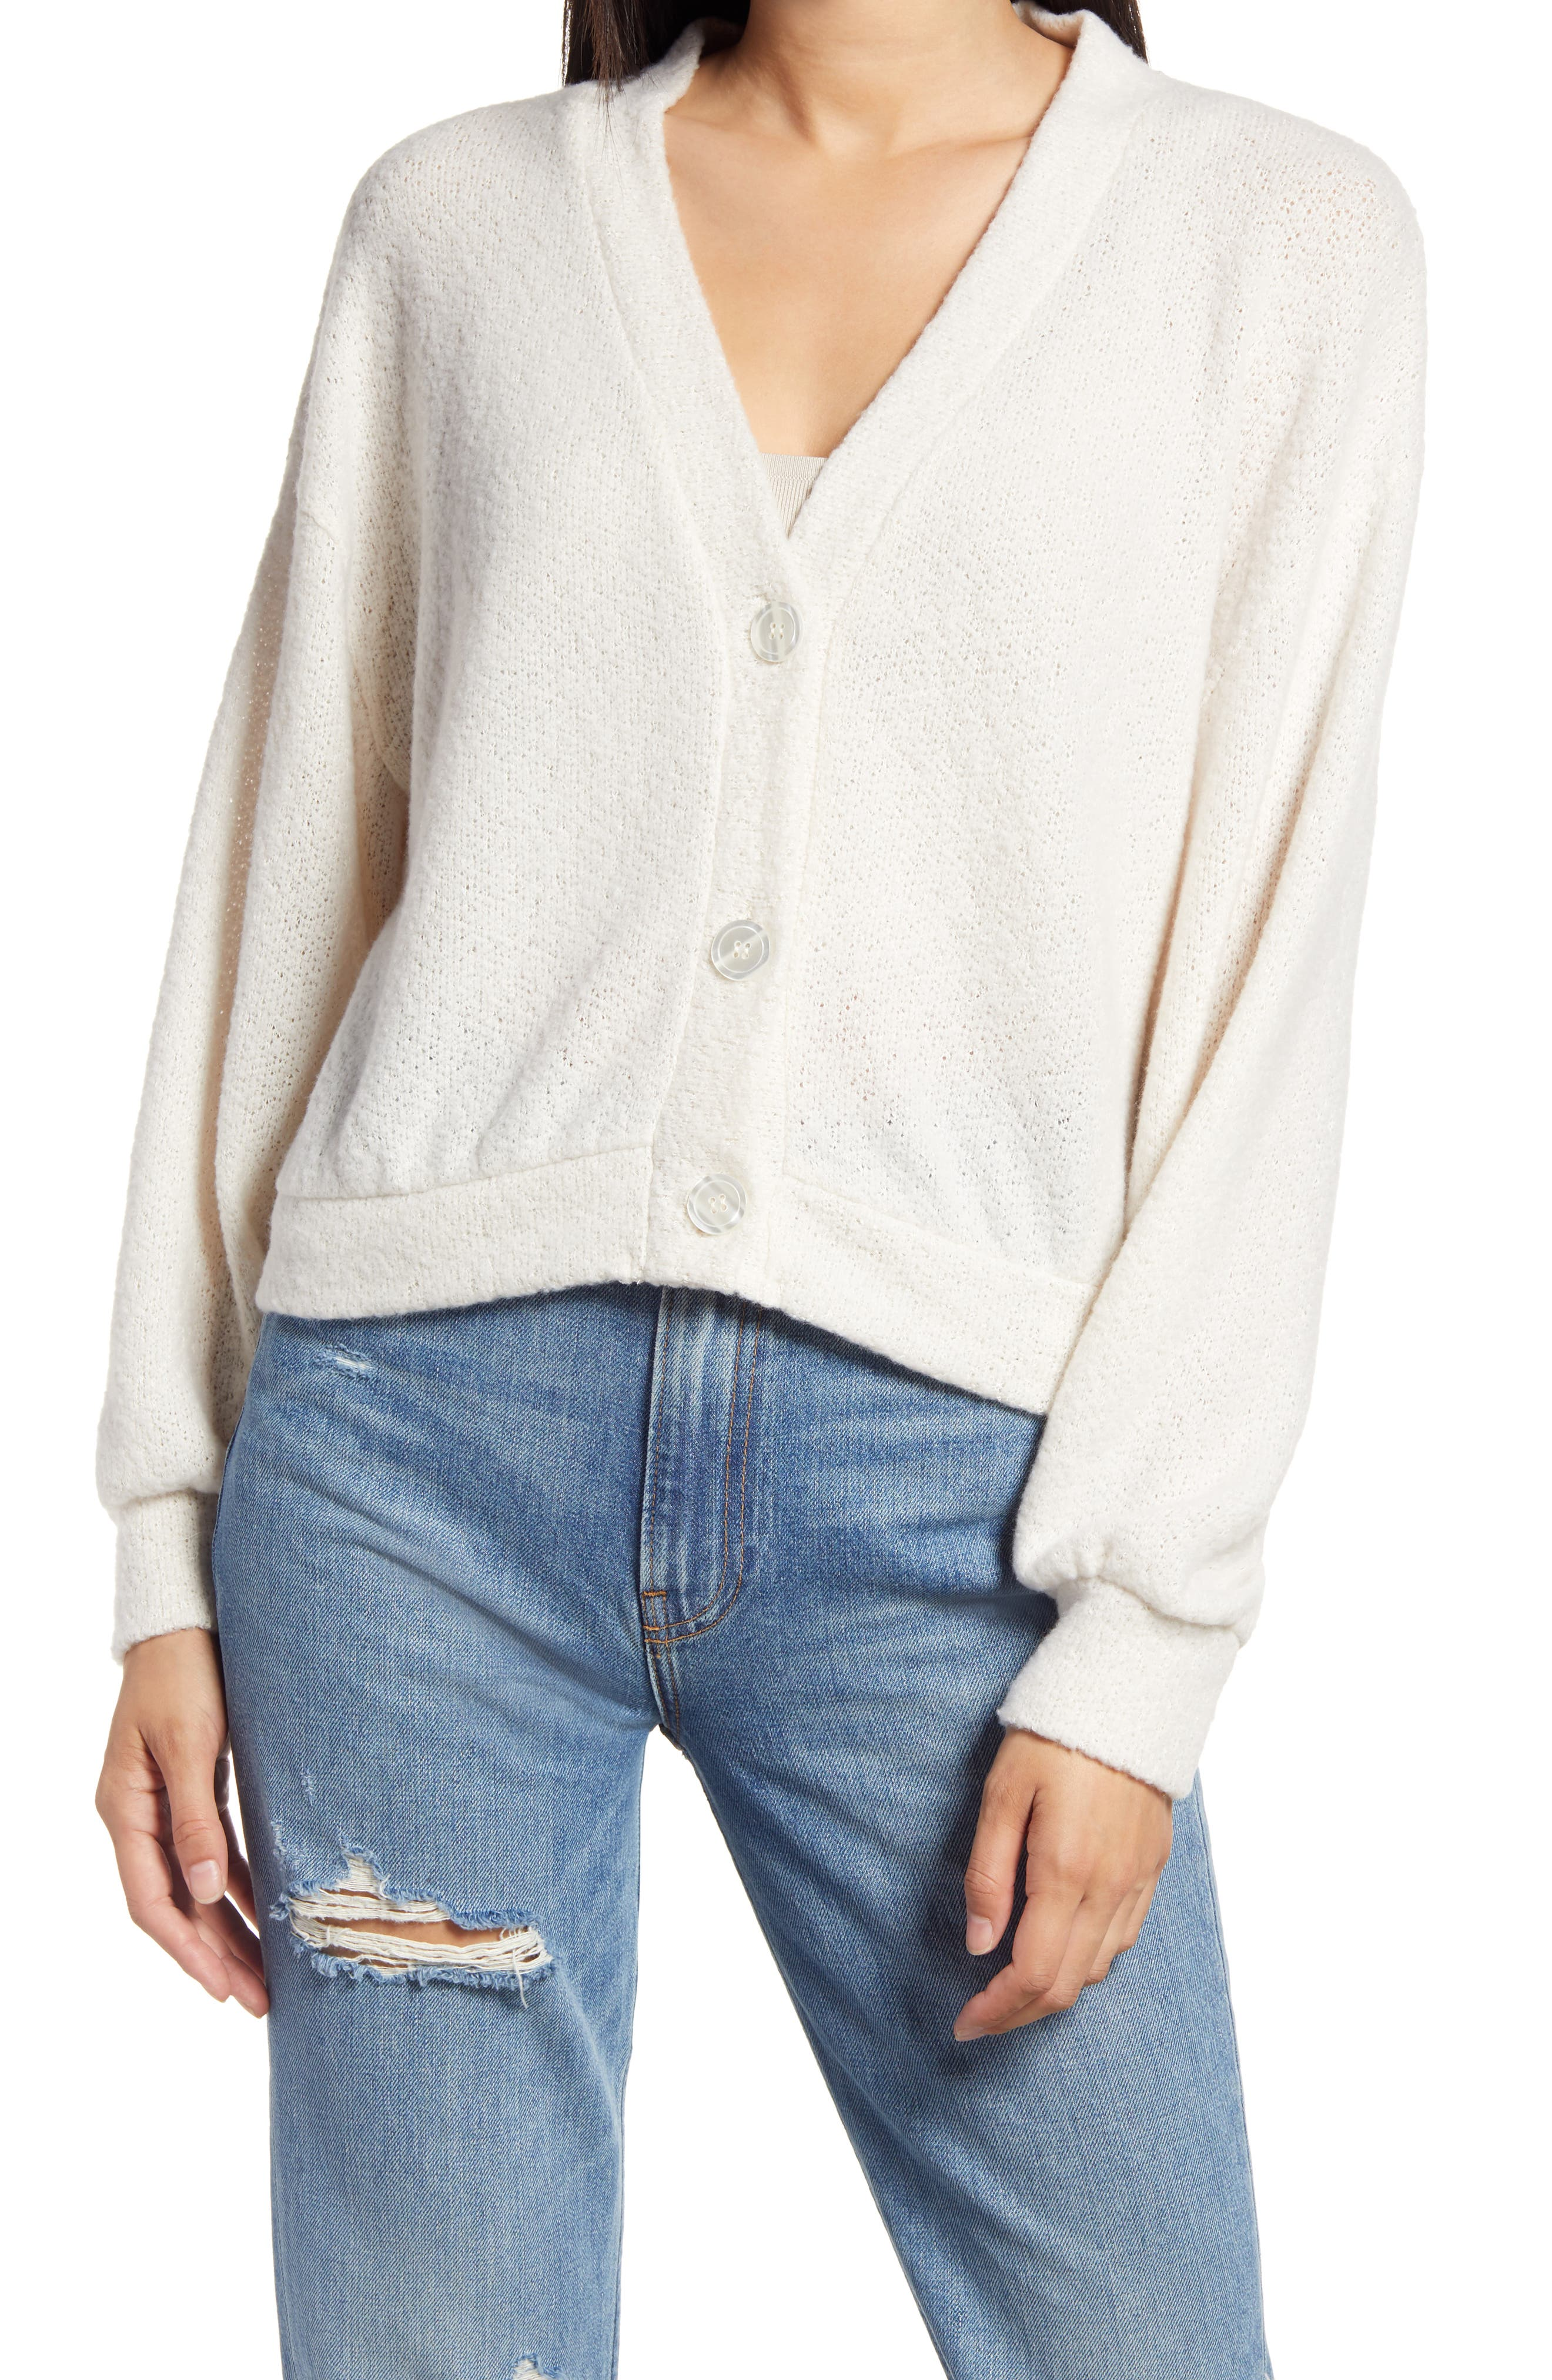 Pearly buttons enhance the pretty aesthetic of this soft, lightweight cardigan knit with a relaxed fit that\\\'s made for layering on cold days. Style Name: All In Favor V-Neck Cardigan. Style Number: 6133431. Available in stores.